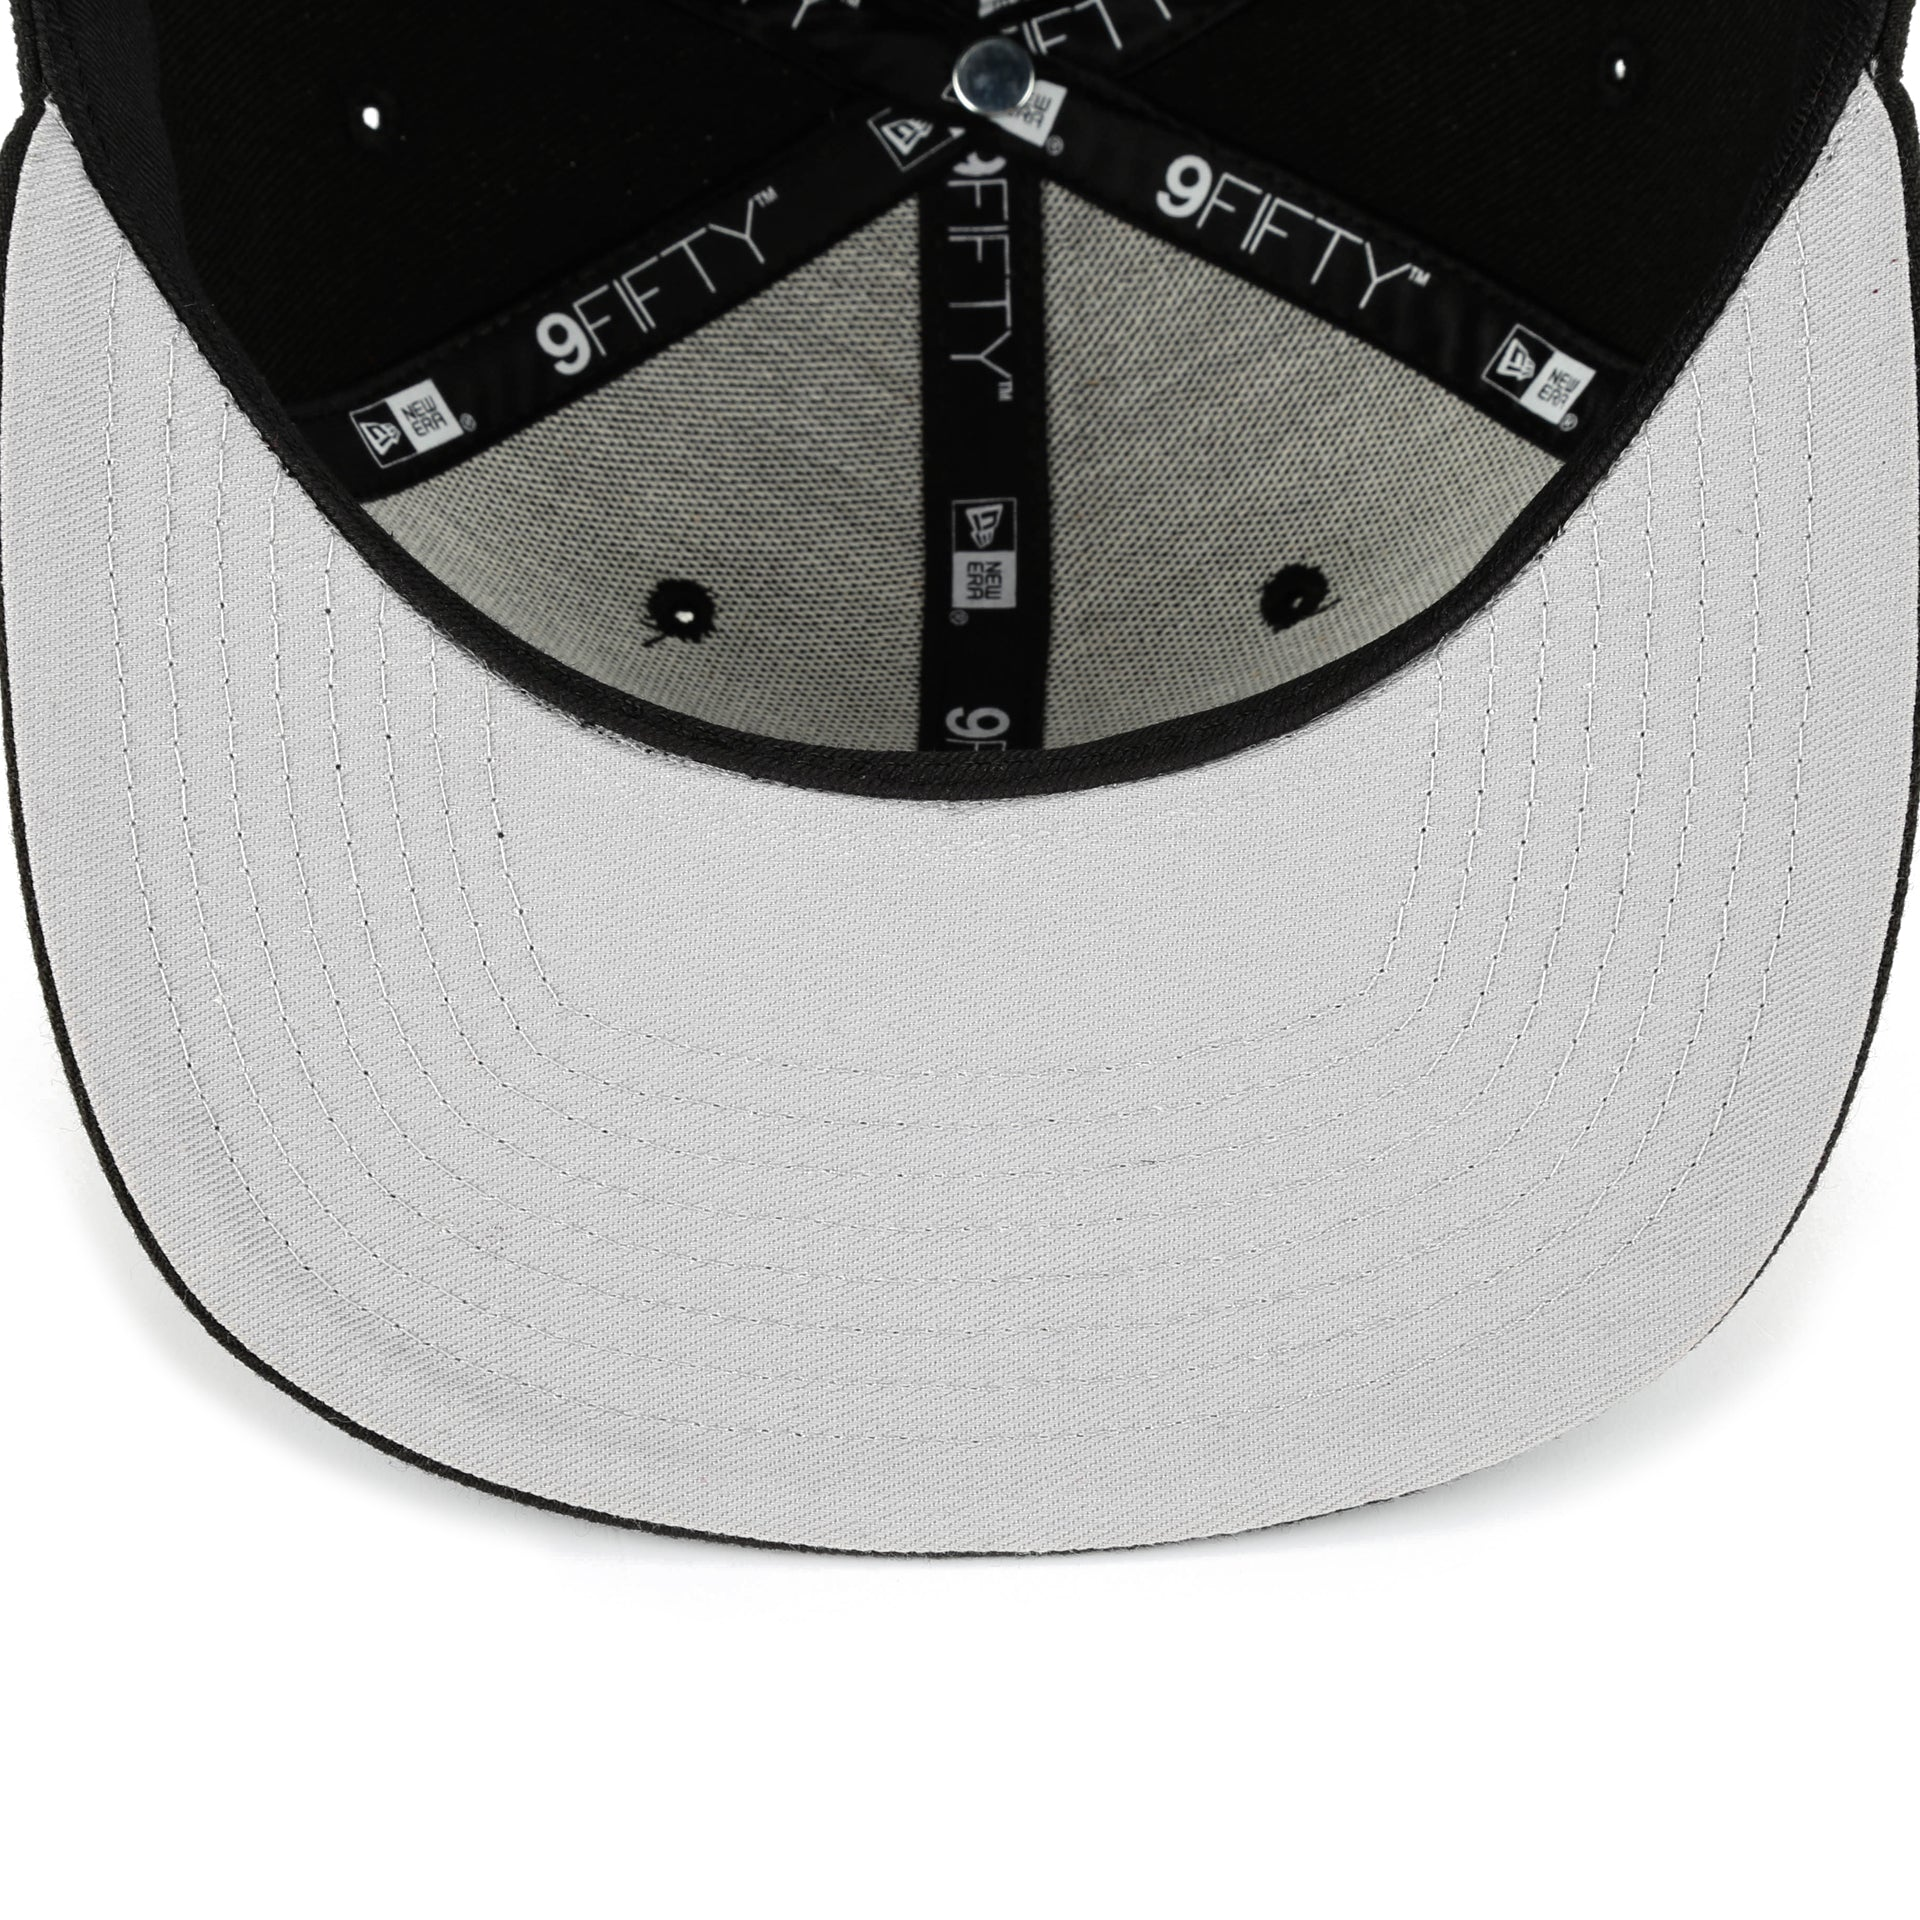 authentic on feet shots of speical offer New Era 9Fifty League Basic Snapback - Boston Red Sox/Black - New Star